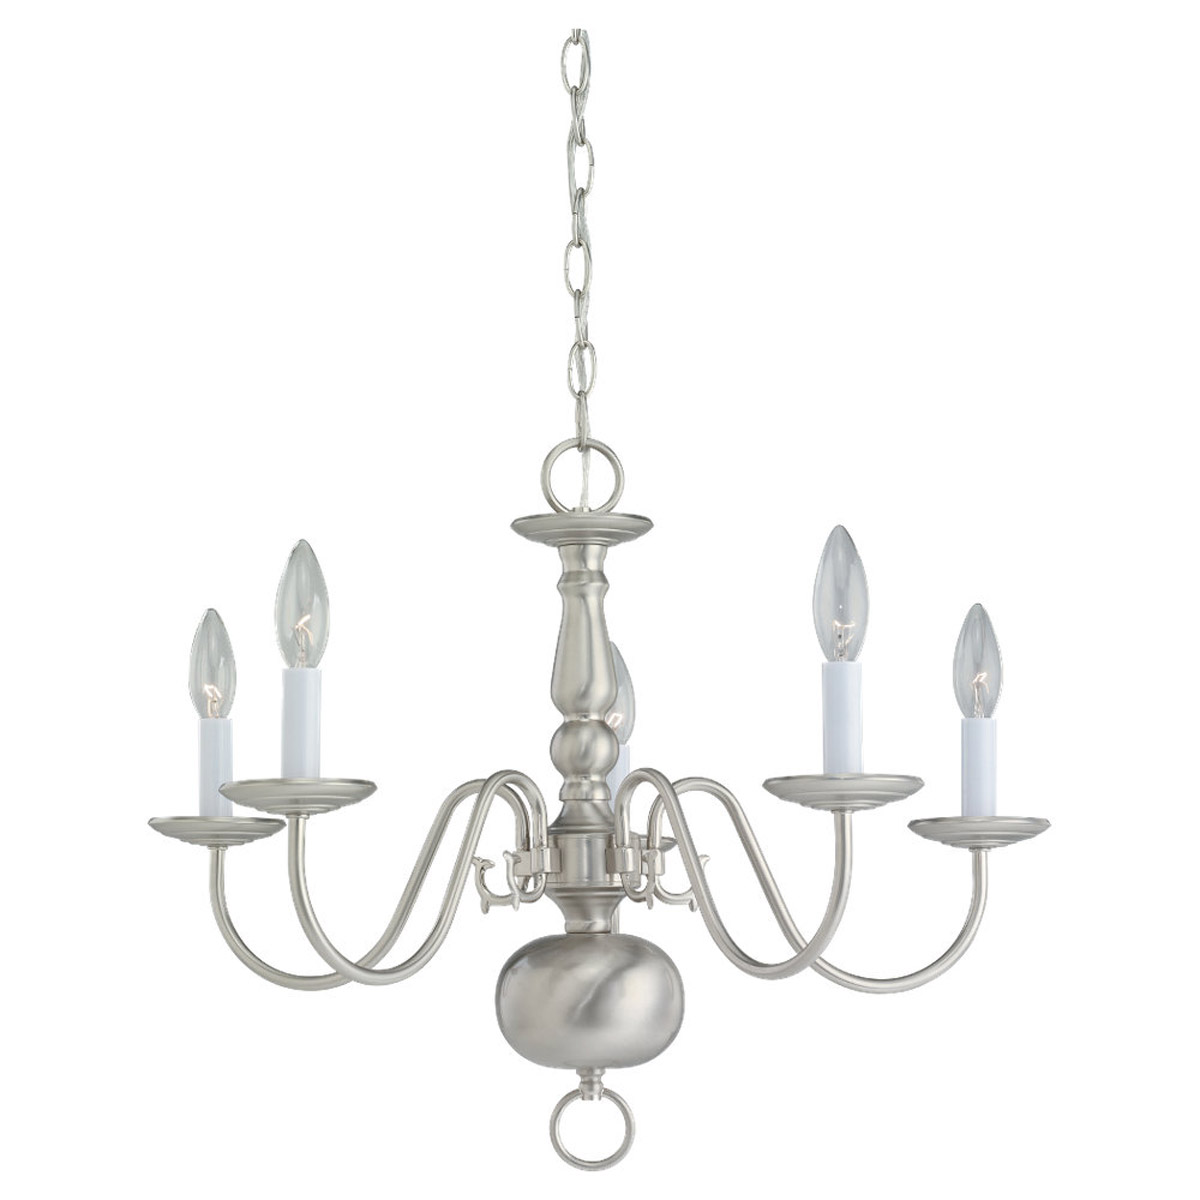 Sea Gull 3410-962 Traditional 5 Light 24 inch Brushed Nickel Chandelier Ceiling Light photo